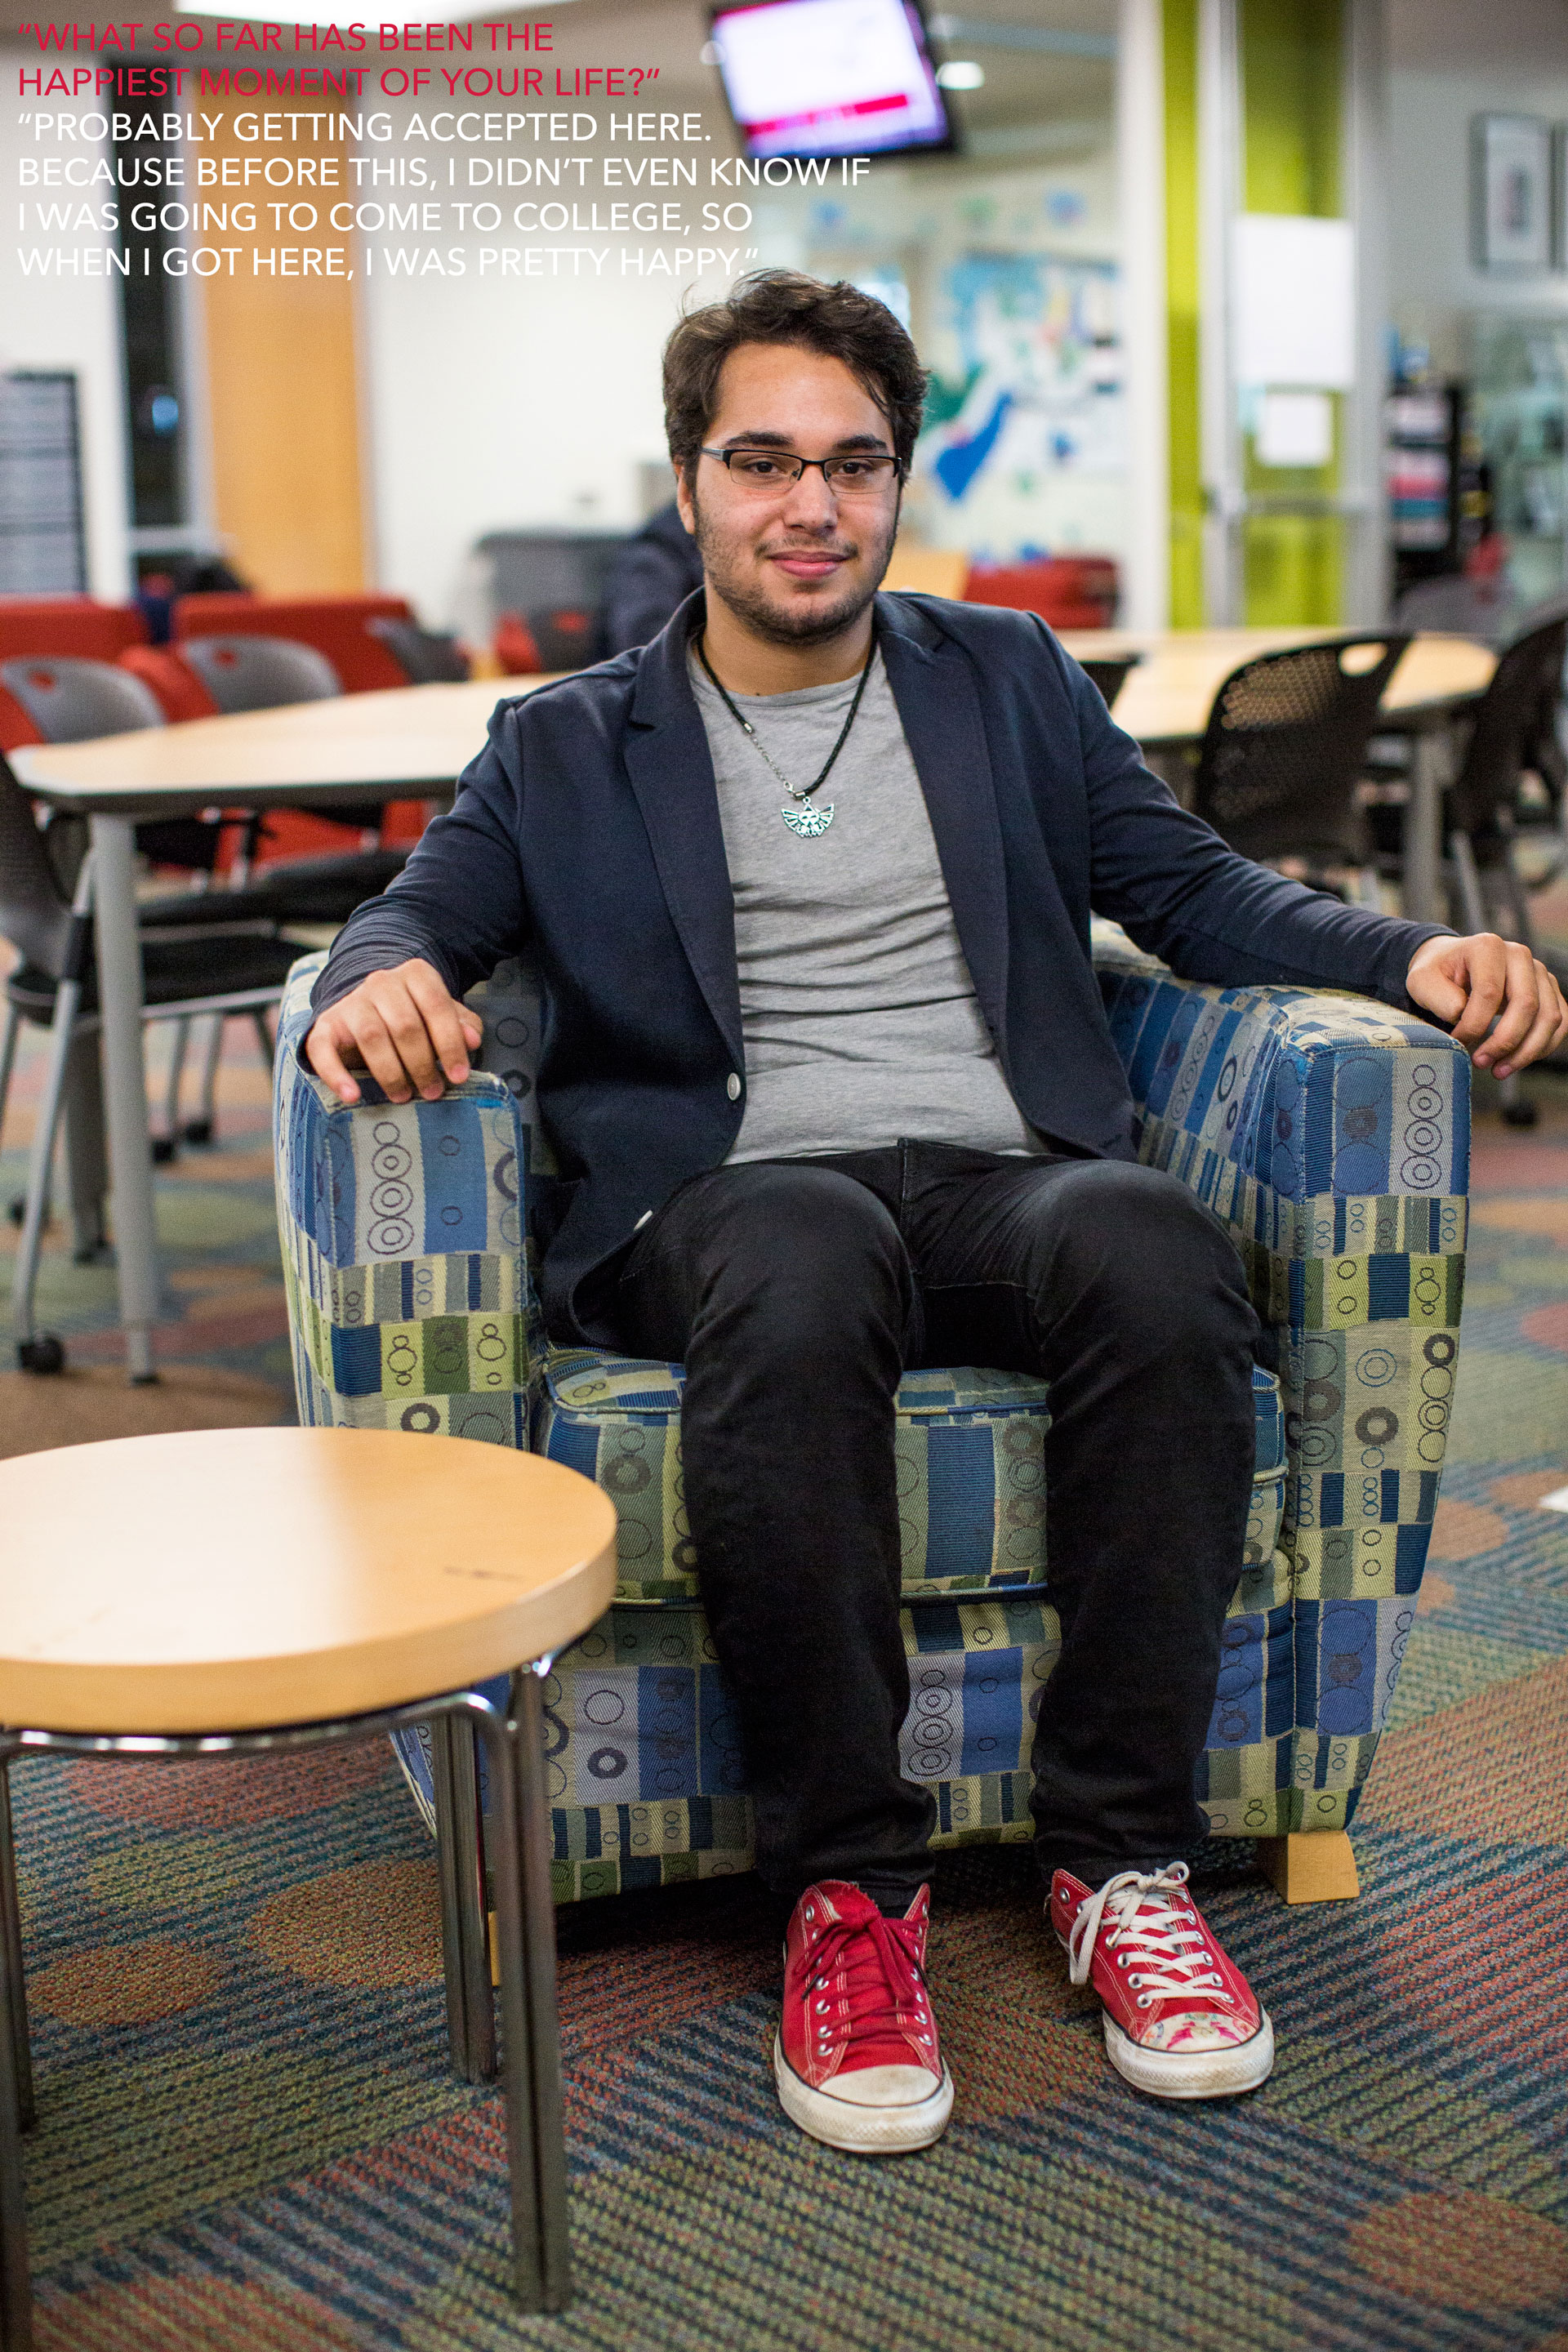 """Photo: Student Alfonso Alvarez sits in the Student Lounge in the Student Services and Classroom Building. On considering the happiest moment of his life, Alvarez says, """"Probably getting accepted here, because before this, I didn't even know if I was going to come to college, so when I got here, I was pretty happy."""" Photo & interview by The Signal reporters Maegan Hufstetler and Travis Pennington."""